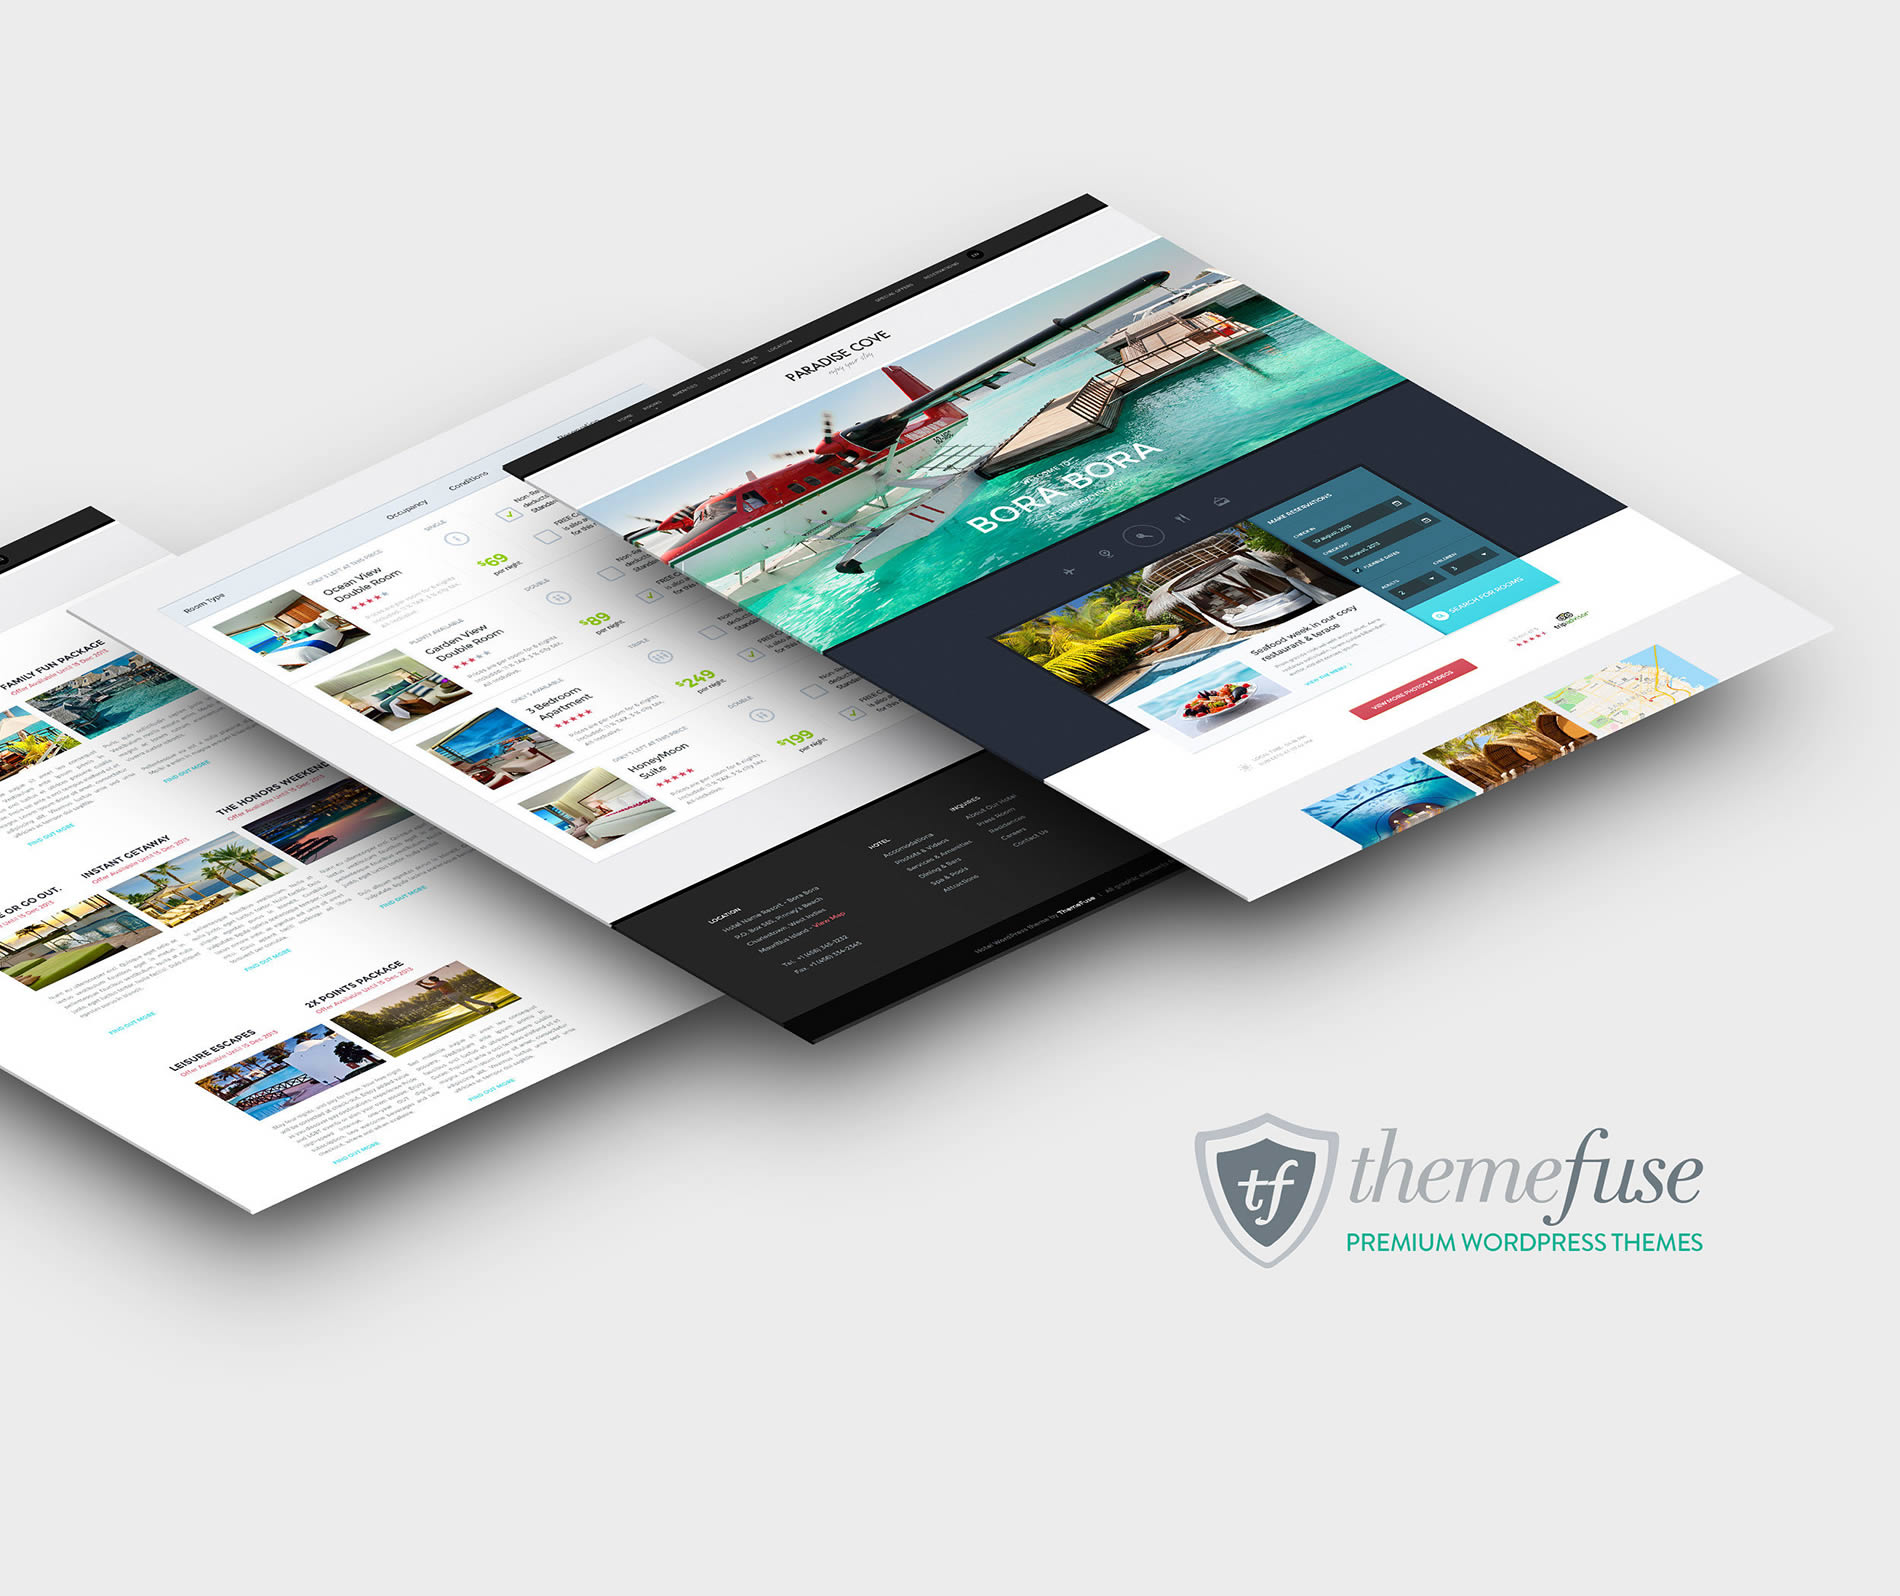 beautiful wordpress theme websites by themefuse, enter giveaway